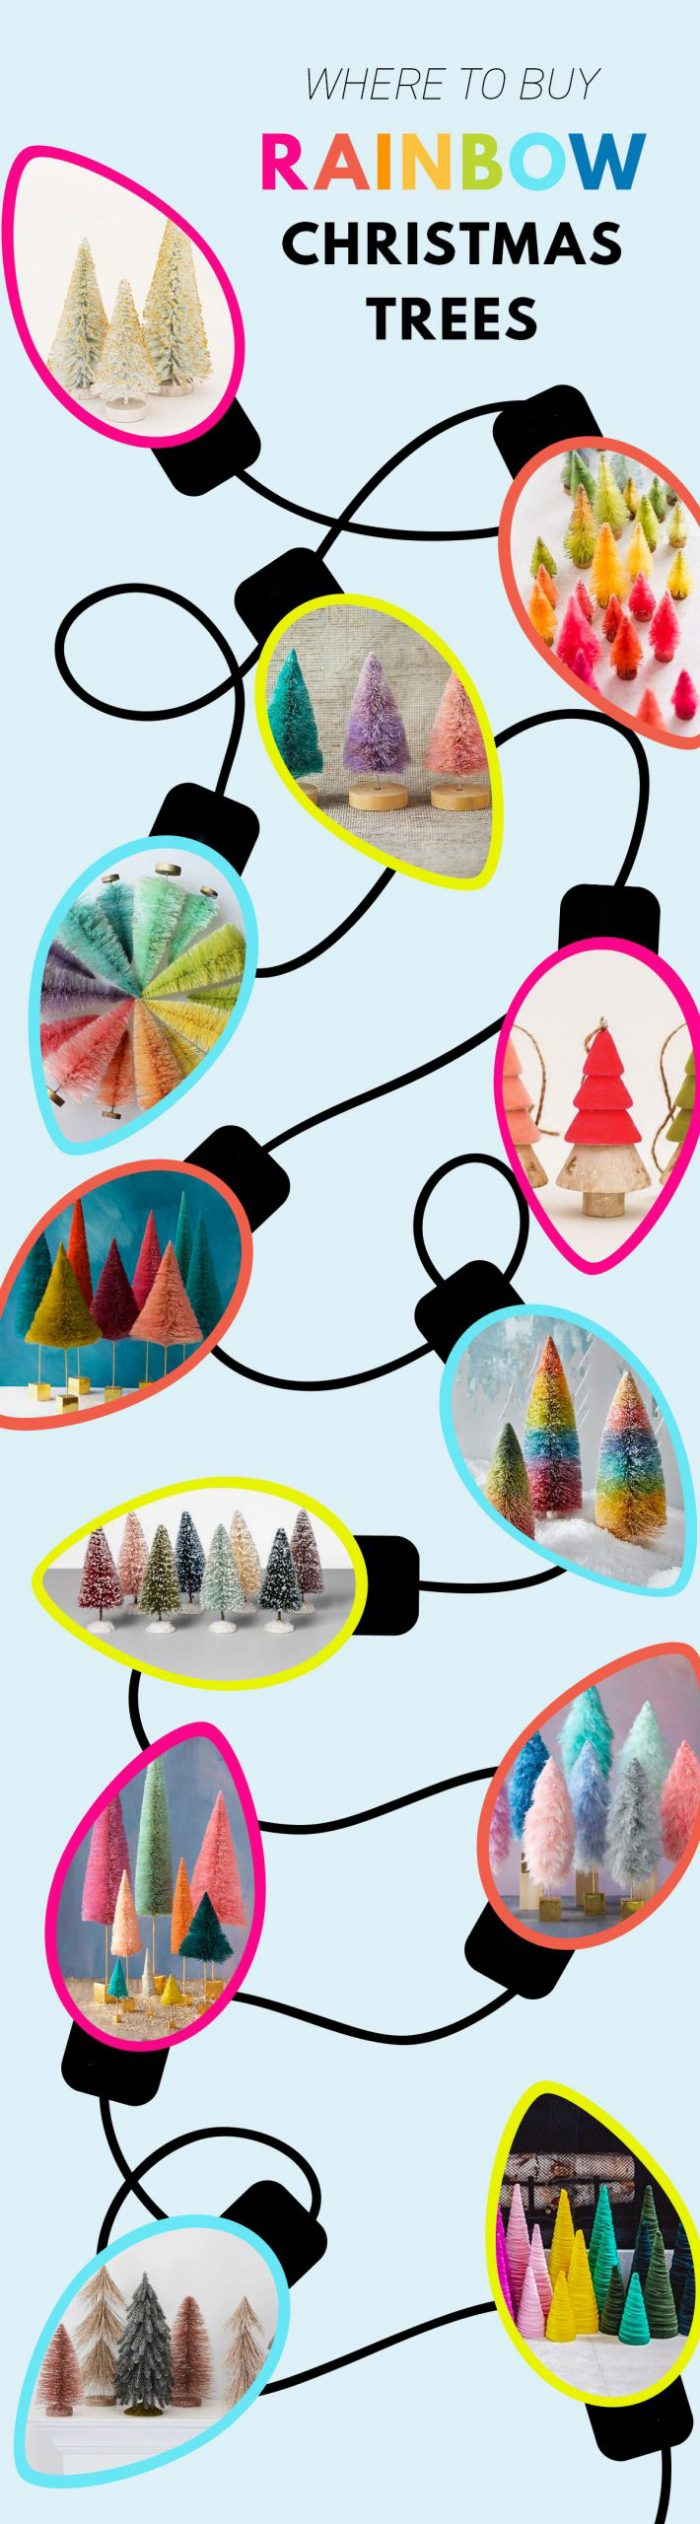 Where To Buy Colorful Bottle Brush Trees and Decorative Christmas Trees